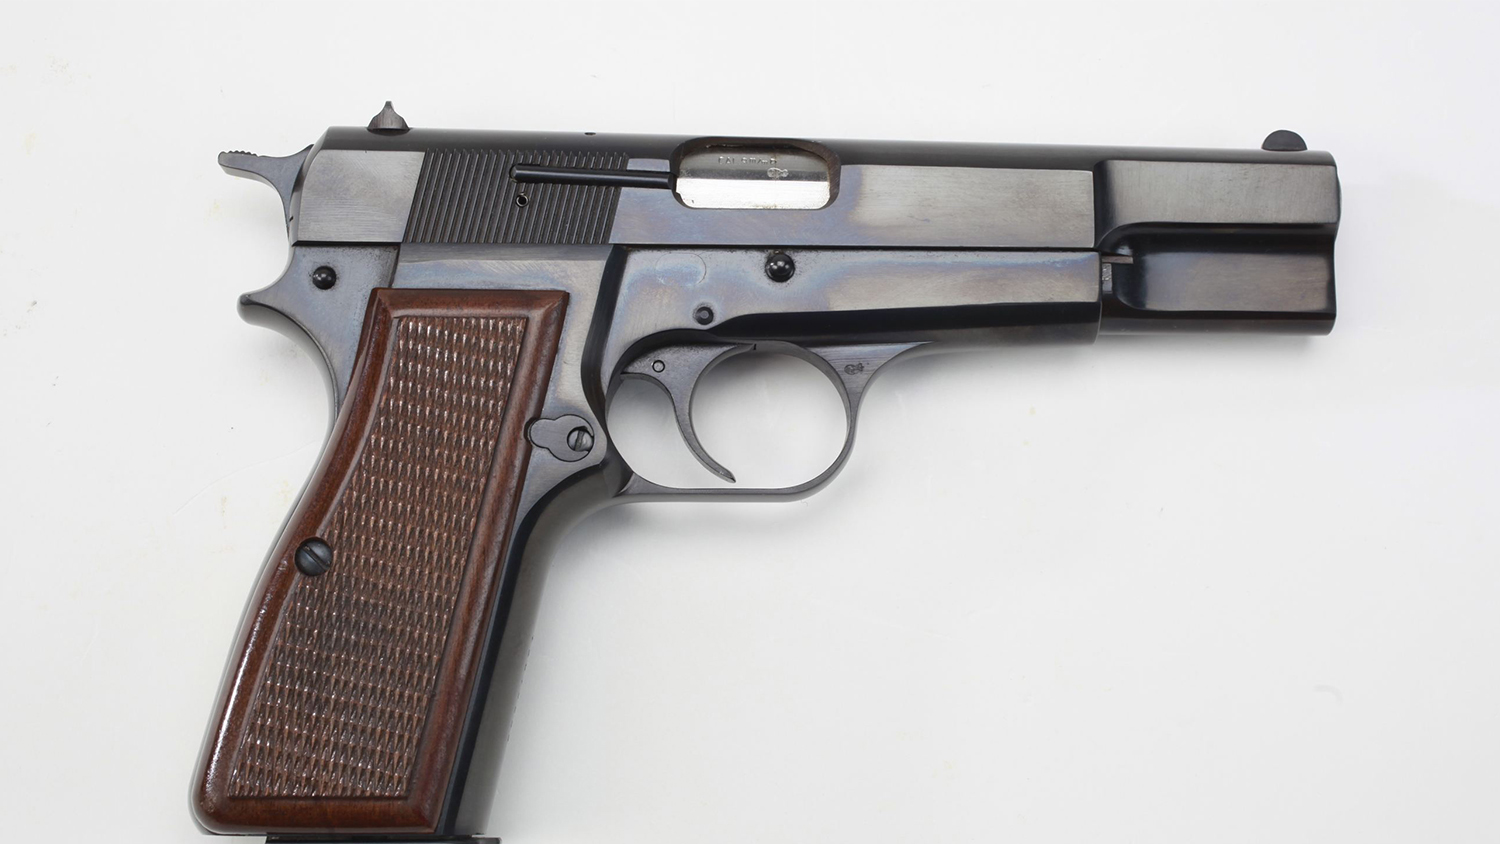 A Brief History of Firearms: John Moses Browning